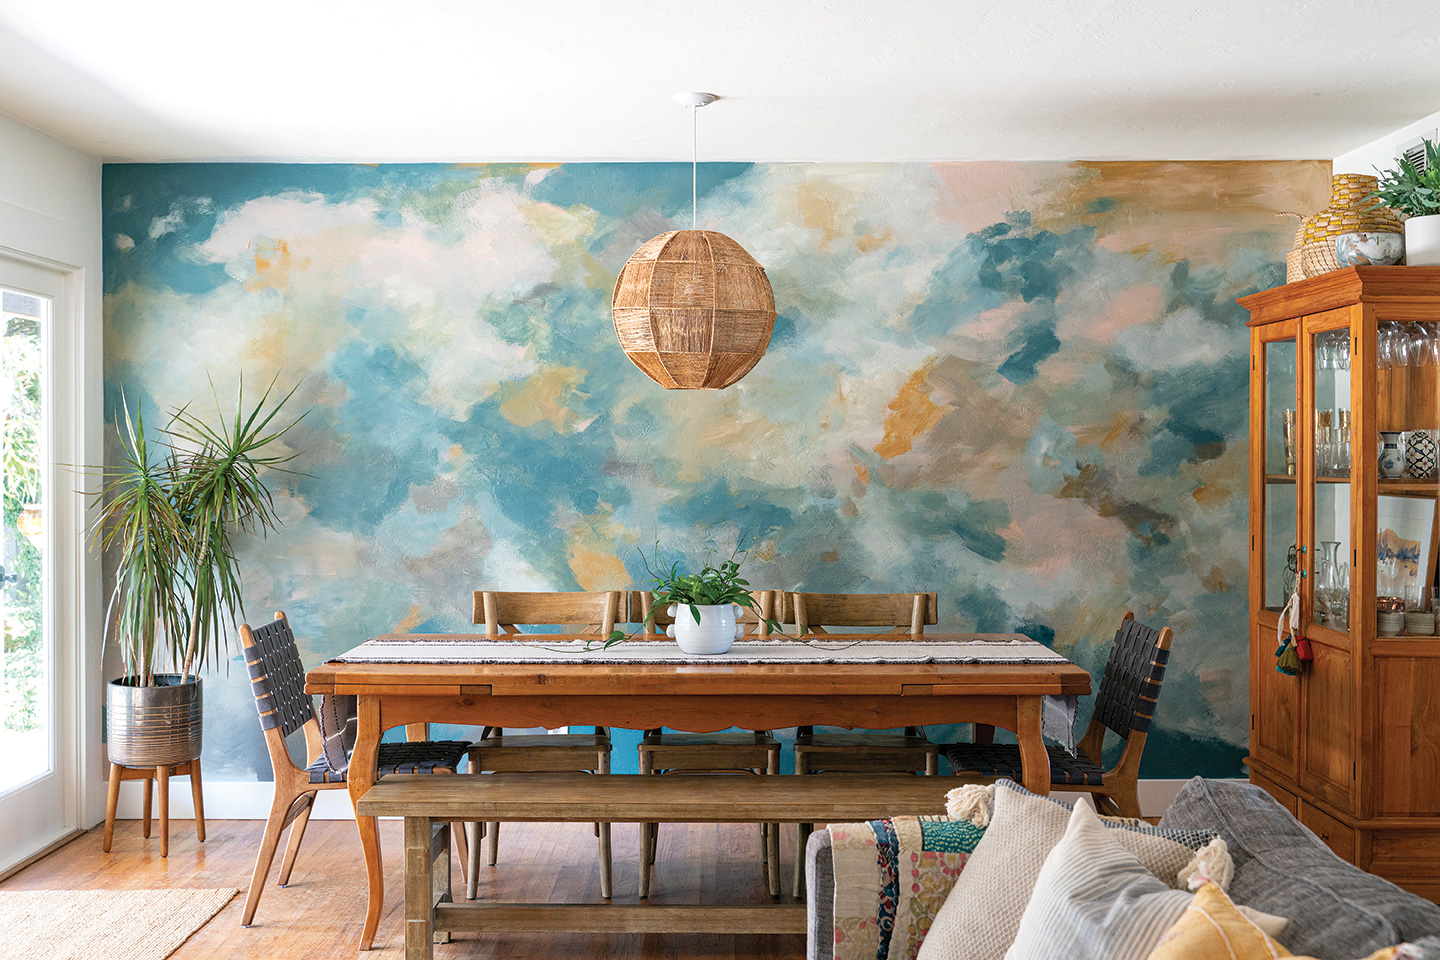 Interior Wall Painting Cost For Your Home